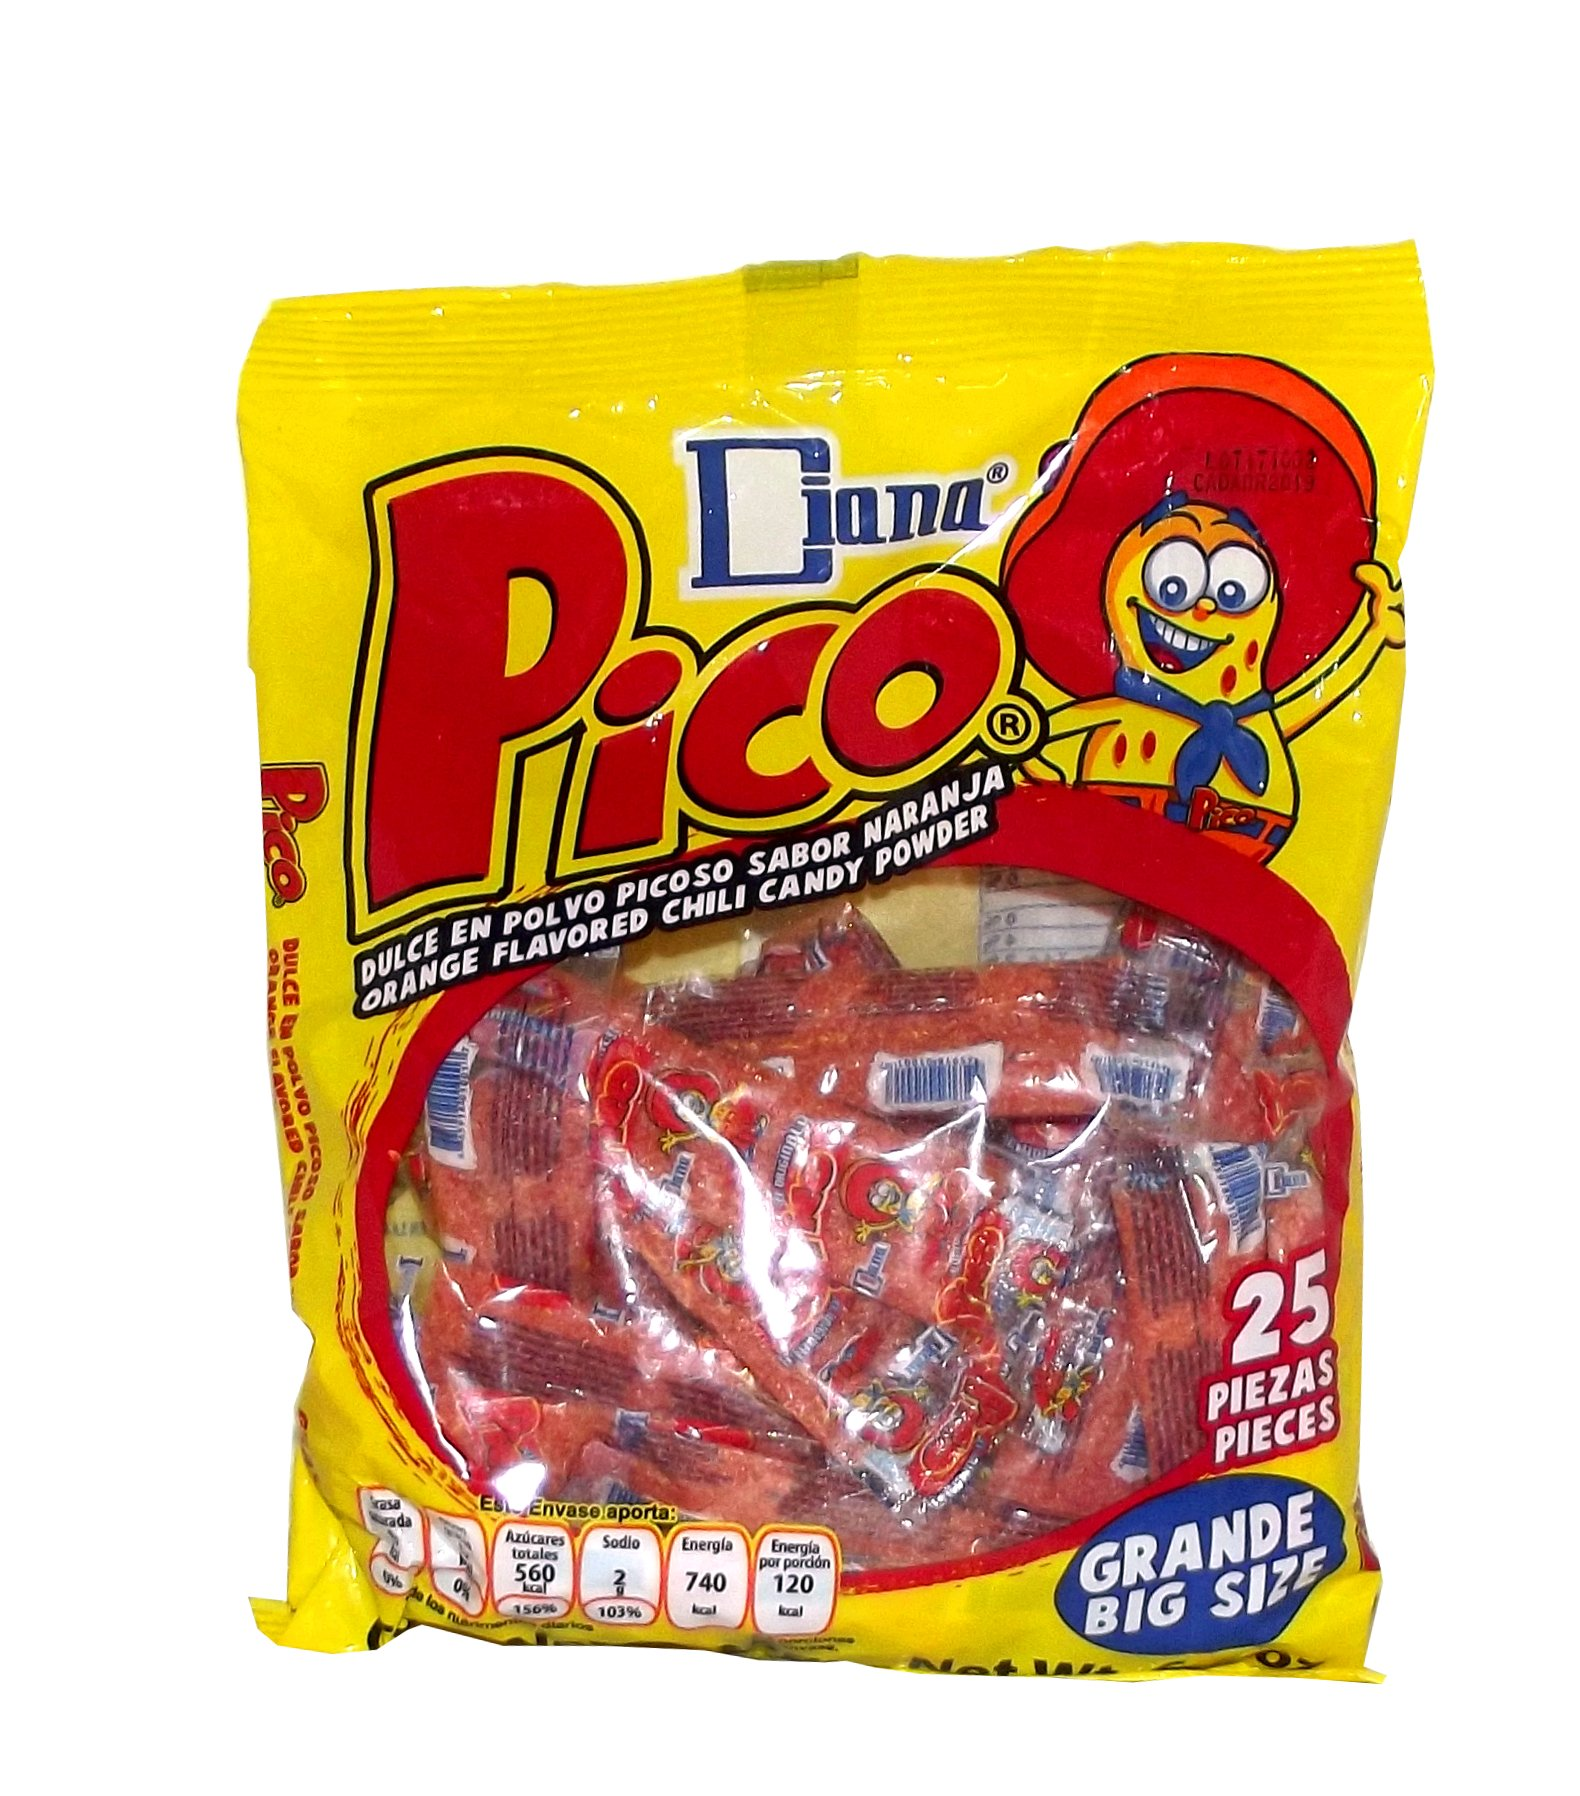 Diana Pico Orange Flavored Chili Powder Candy Packets Grande Pack, 25 pieces